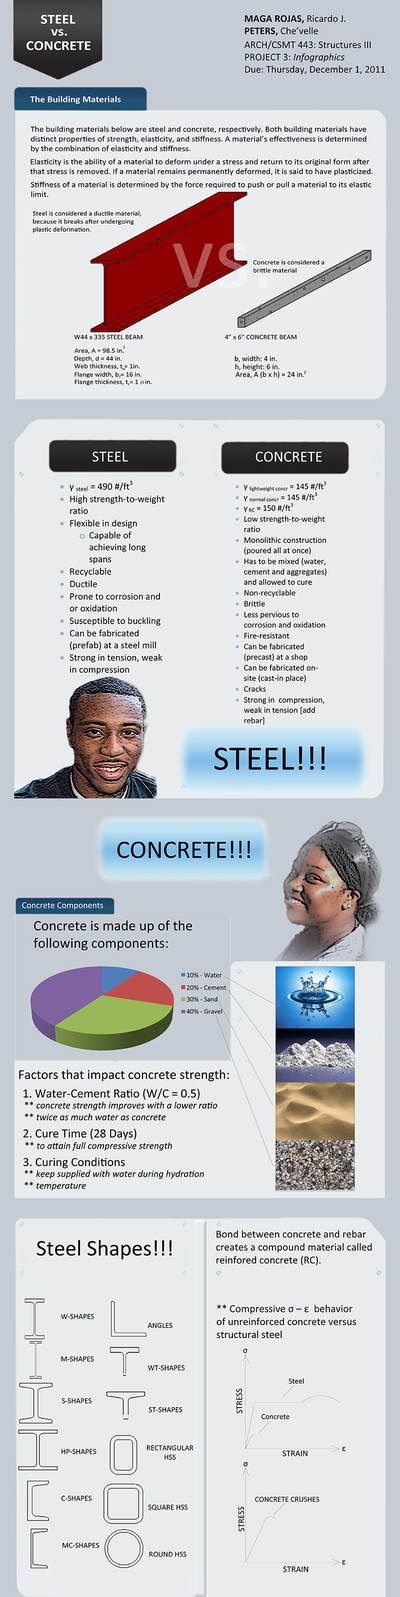 Steel vs. Concrete